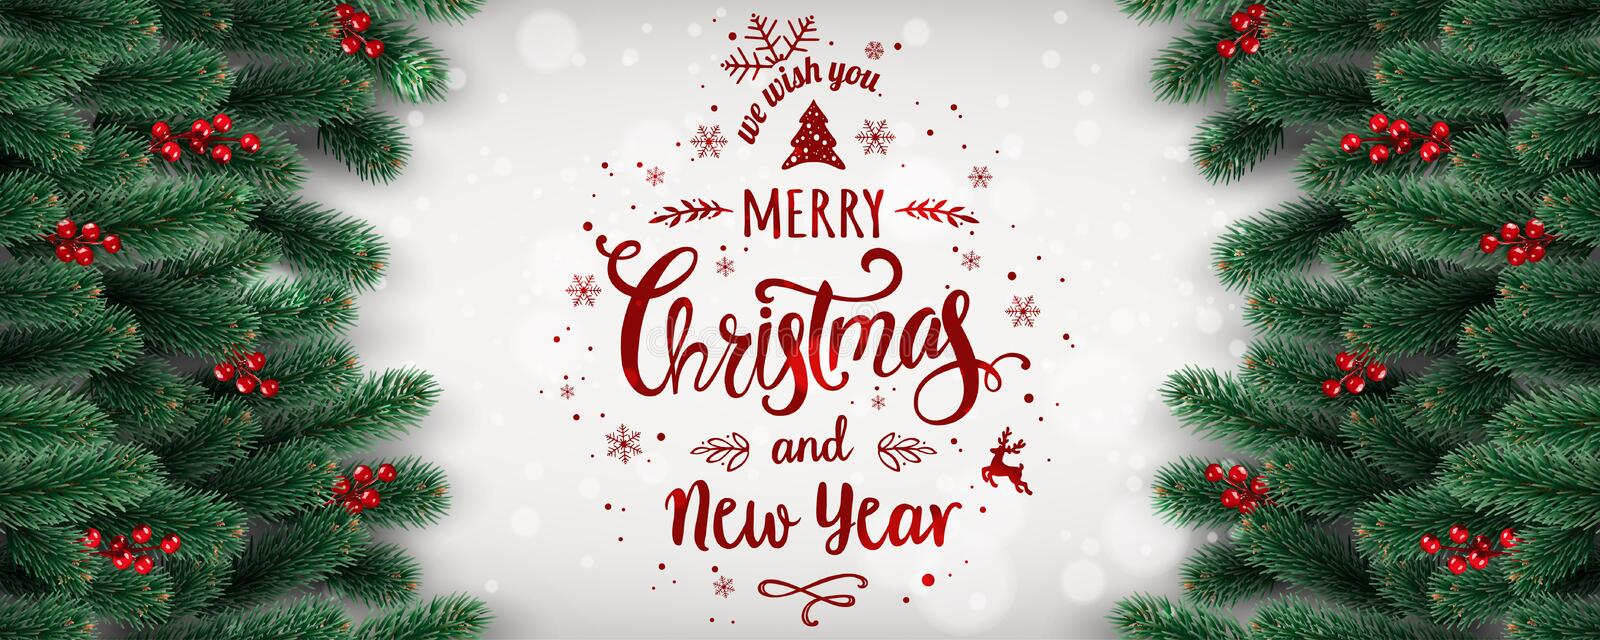 Merry Christmas and New Year Typographical on white background with fir branches, berries, lights, snowflakes. royalty free illustration